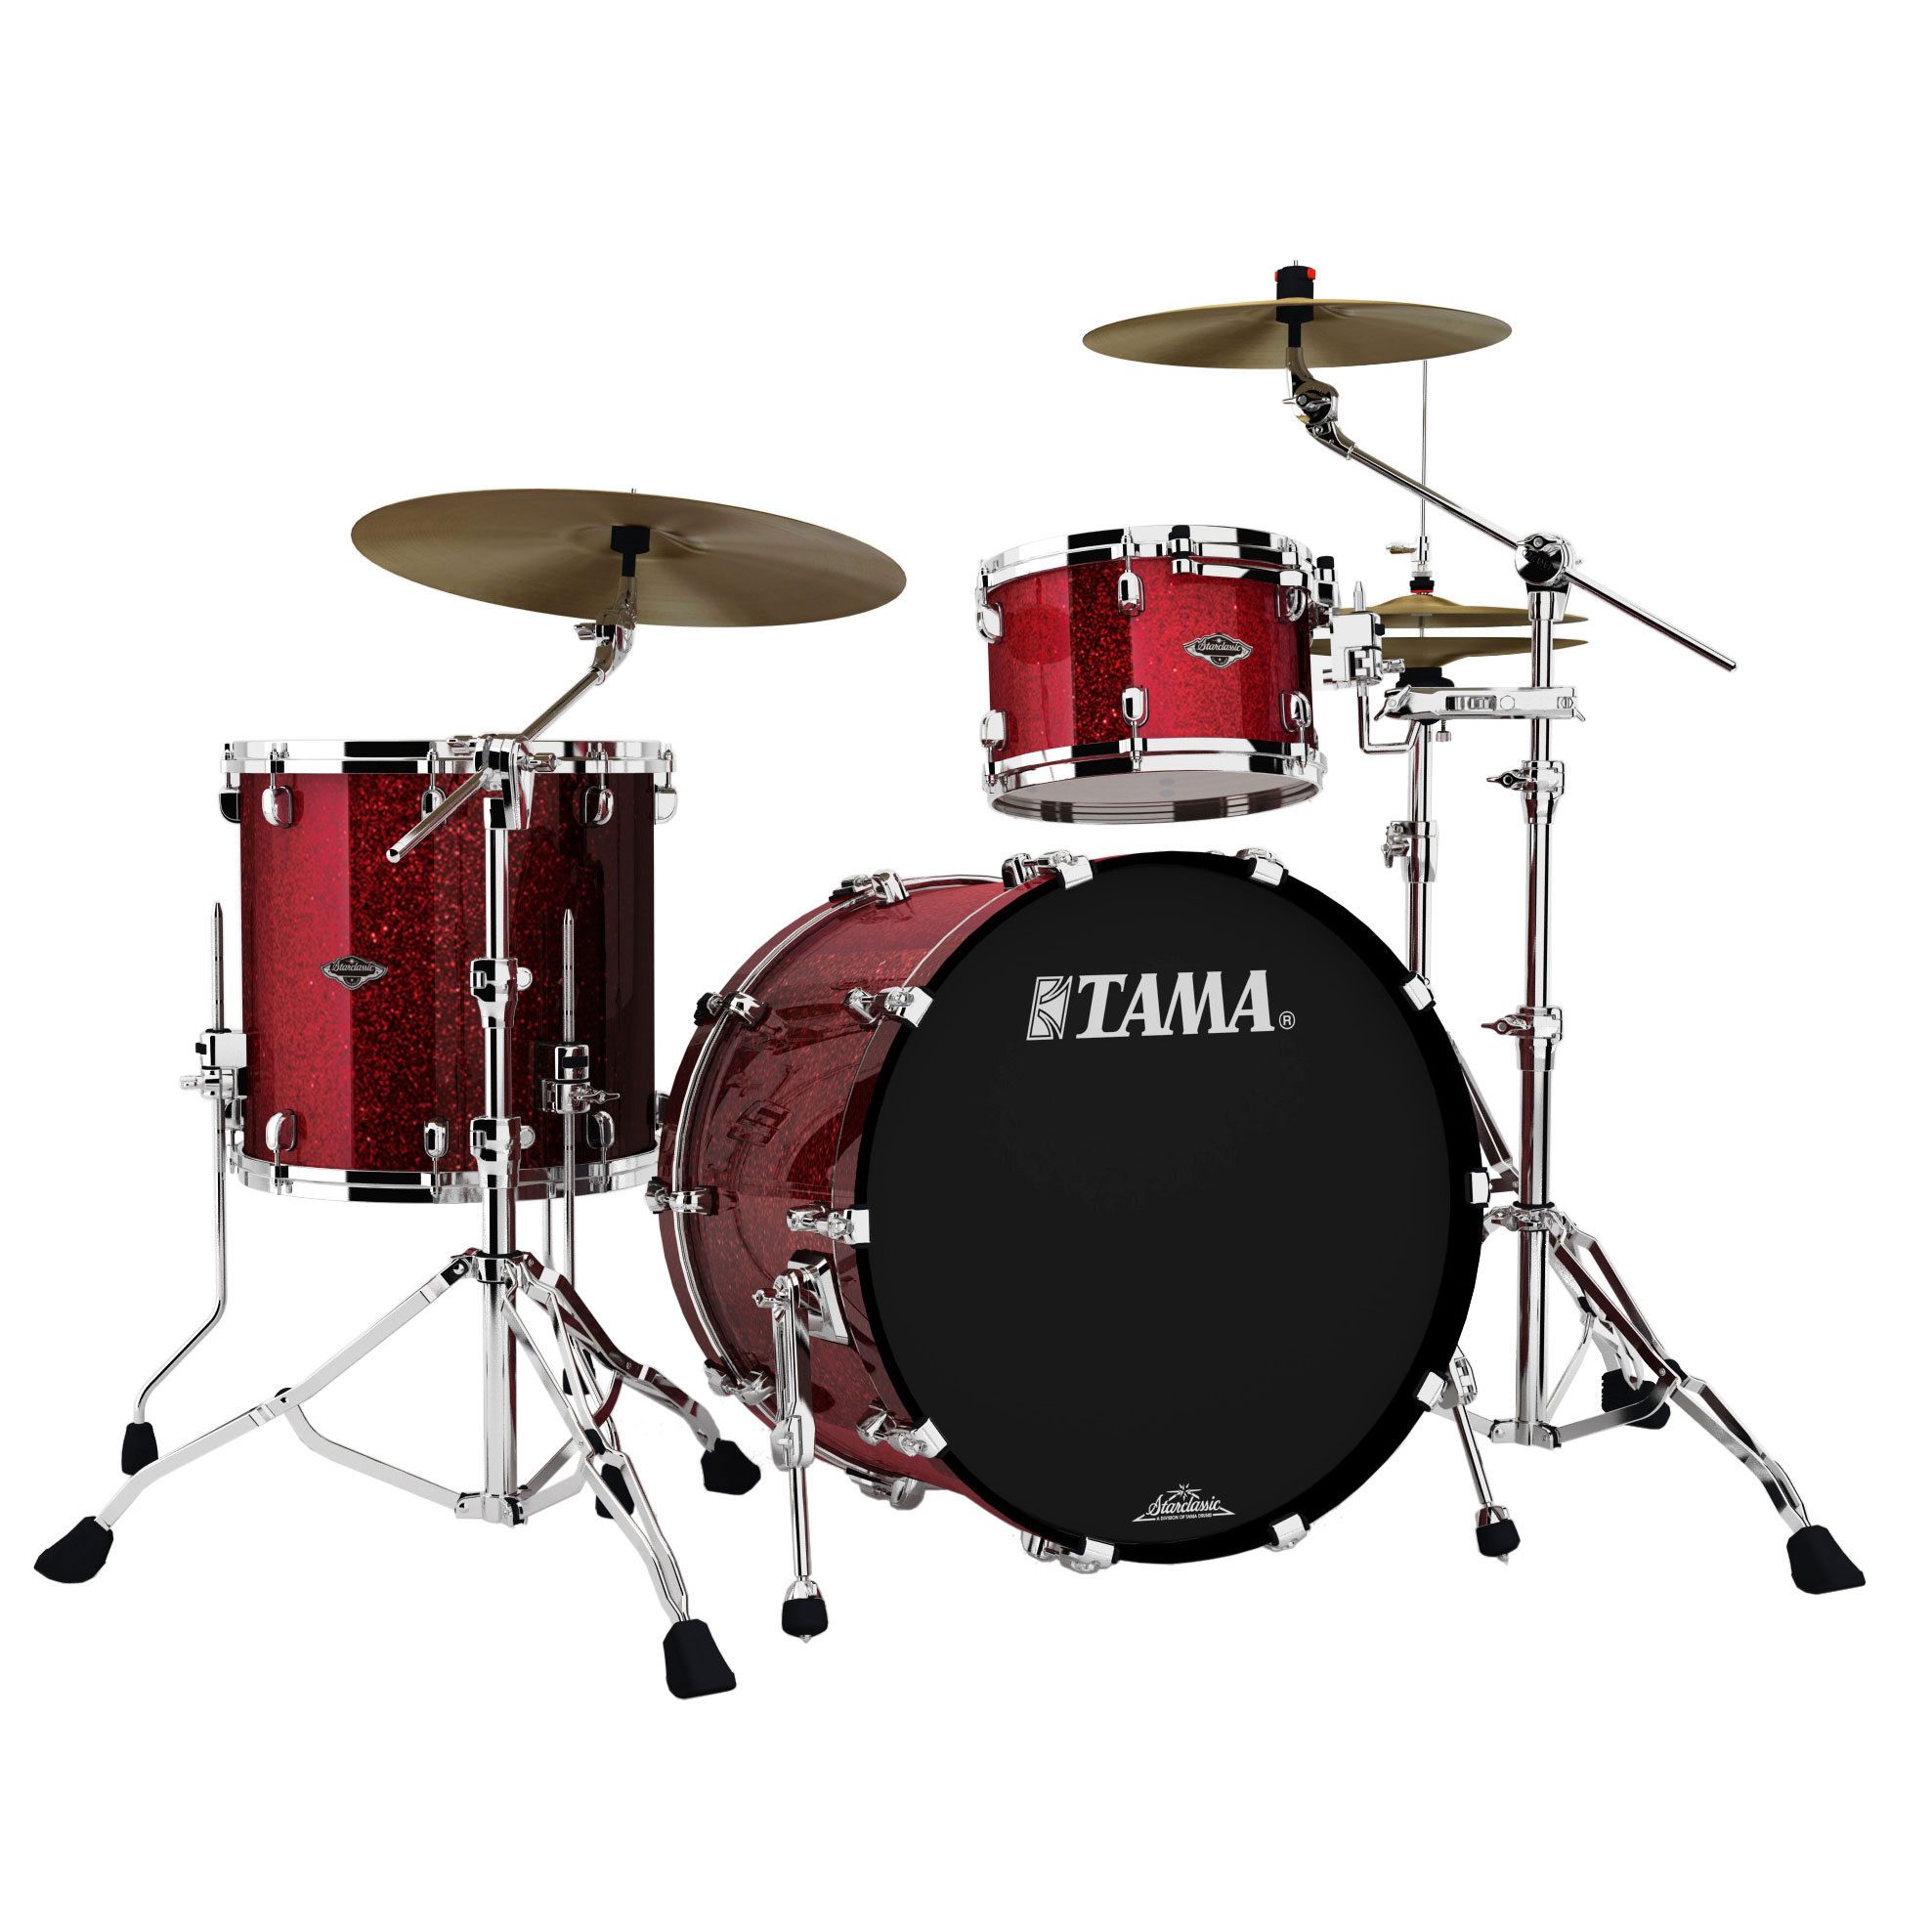 "Tama Starclassic Performer B/B 3-Piece Drum Set Shell Pack (22"" Bass, 12/16"" Toms) in Sparkle Finish"